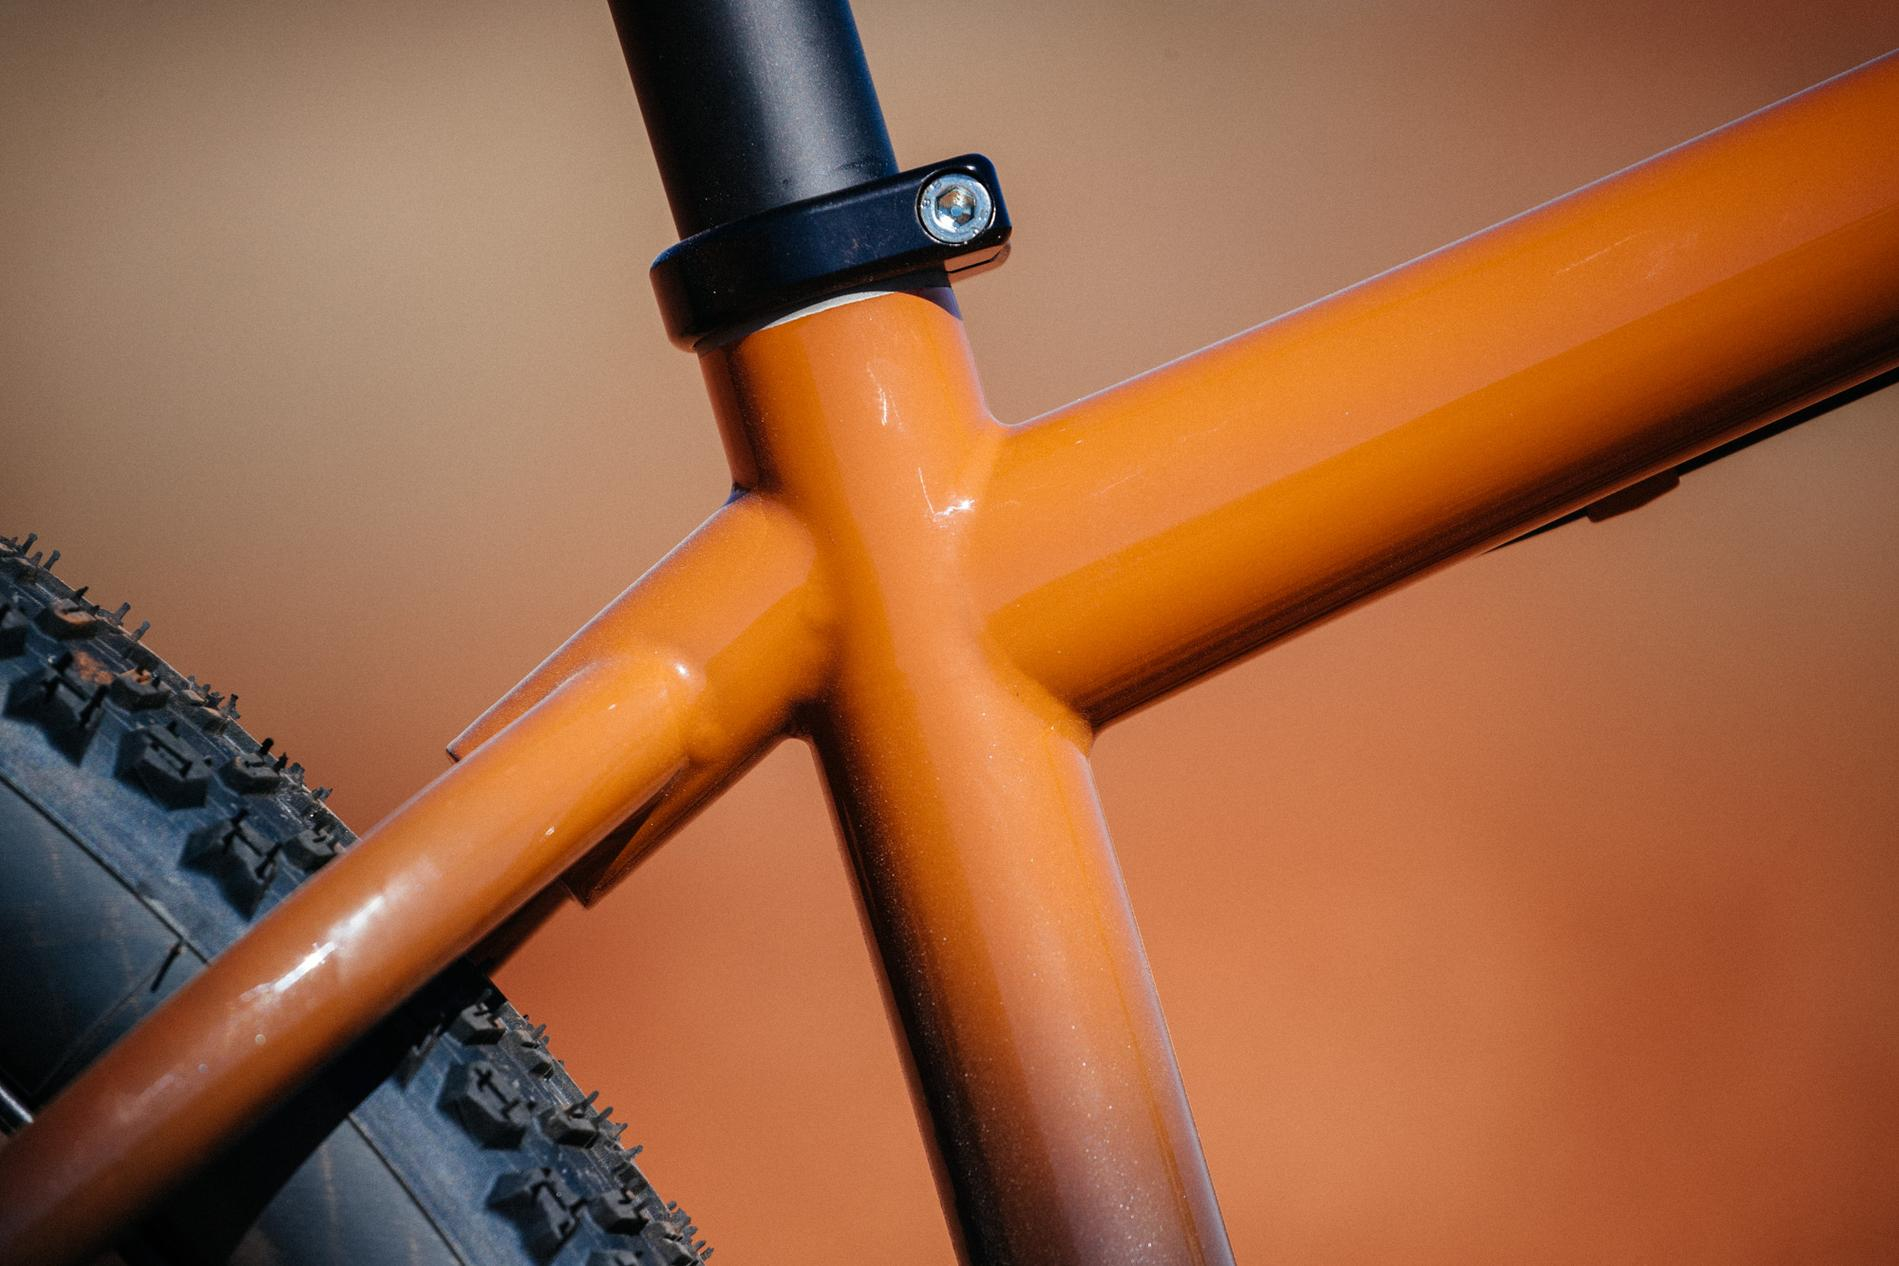 Bobby from Distric Bicycles' Oklahoma Red Dirt Moots Hardtail-21